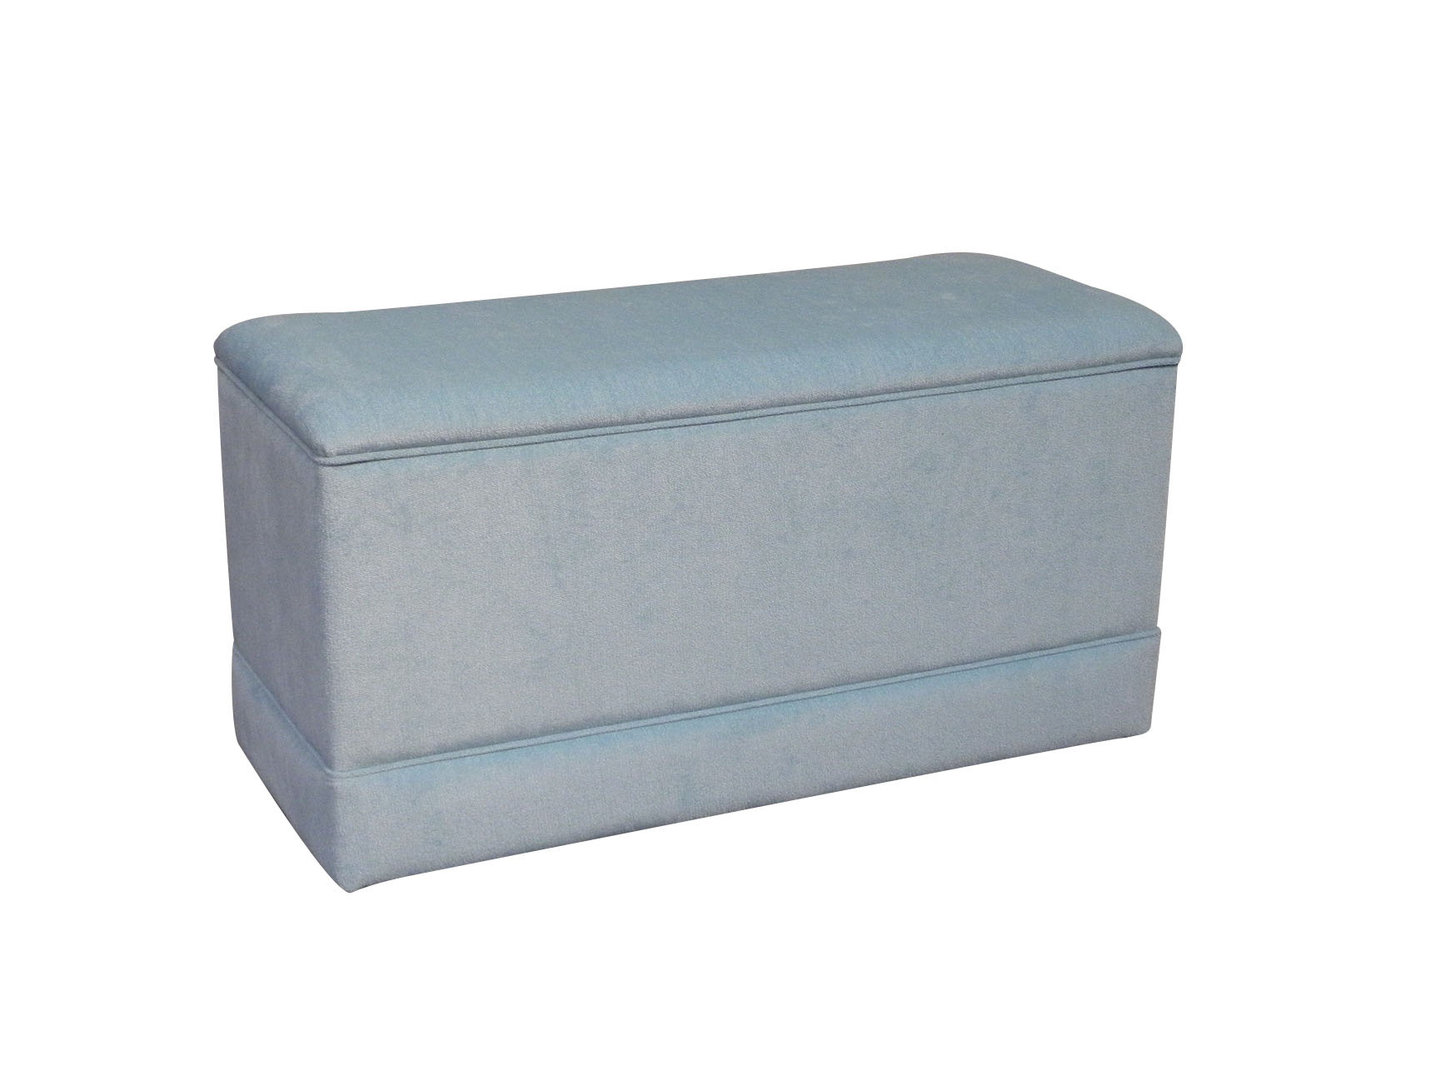 Toy Box Ottoman linen storage chest in Duck Egg Blue Linen Fabric